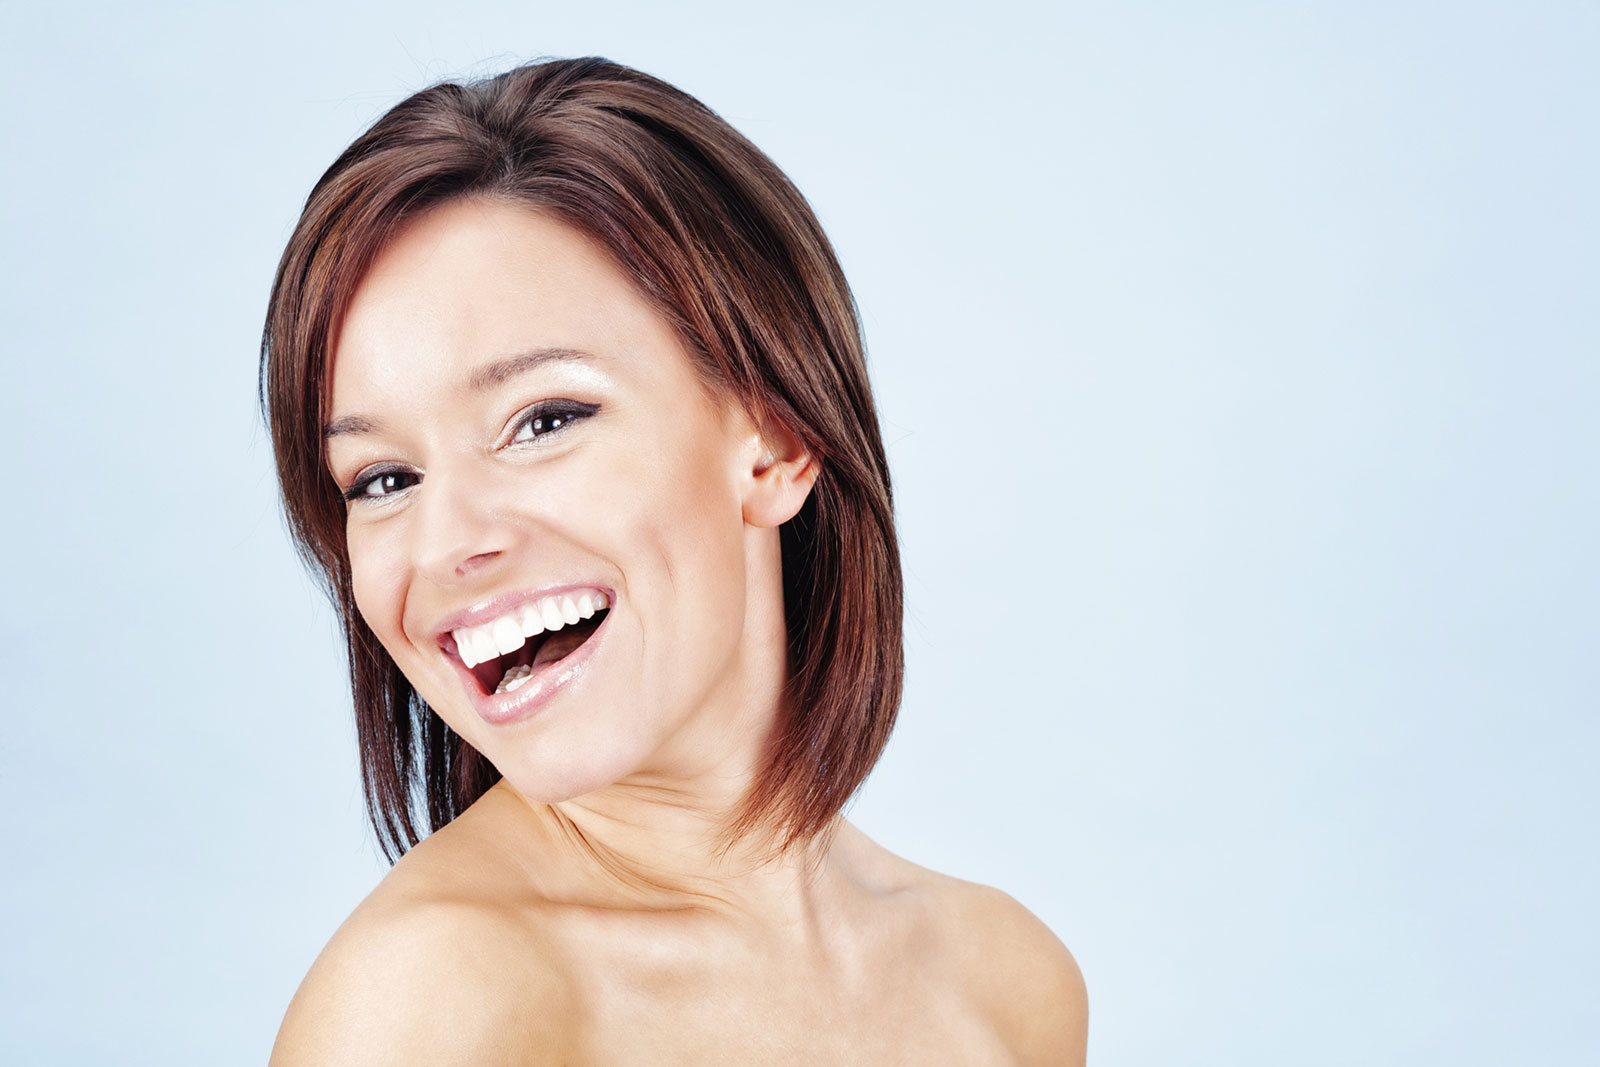 Shoulder-length brunette layers with side parting Medium haircut